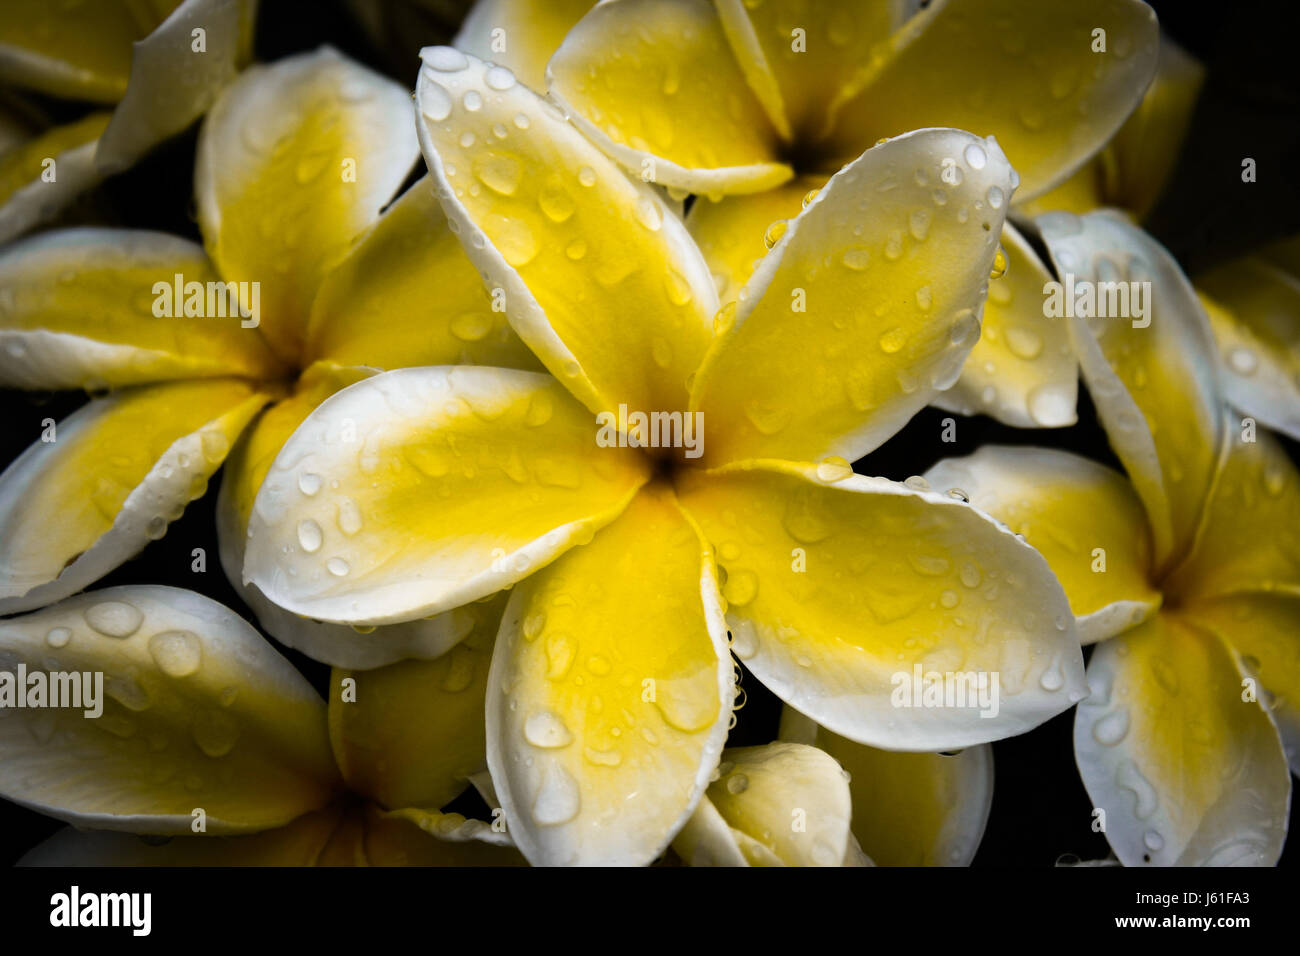 Hawaiian frangipaniplumeria flowers bunch stock photo royalty hawaiian frangipaniplumeria flowers bunch izmirmasajfo Choice Image